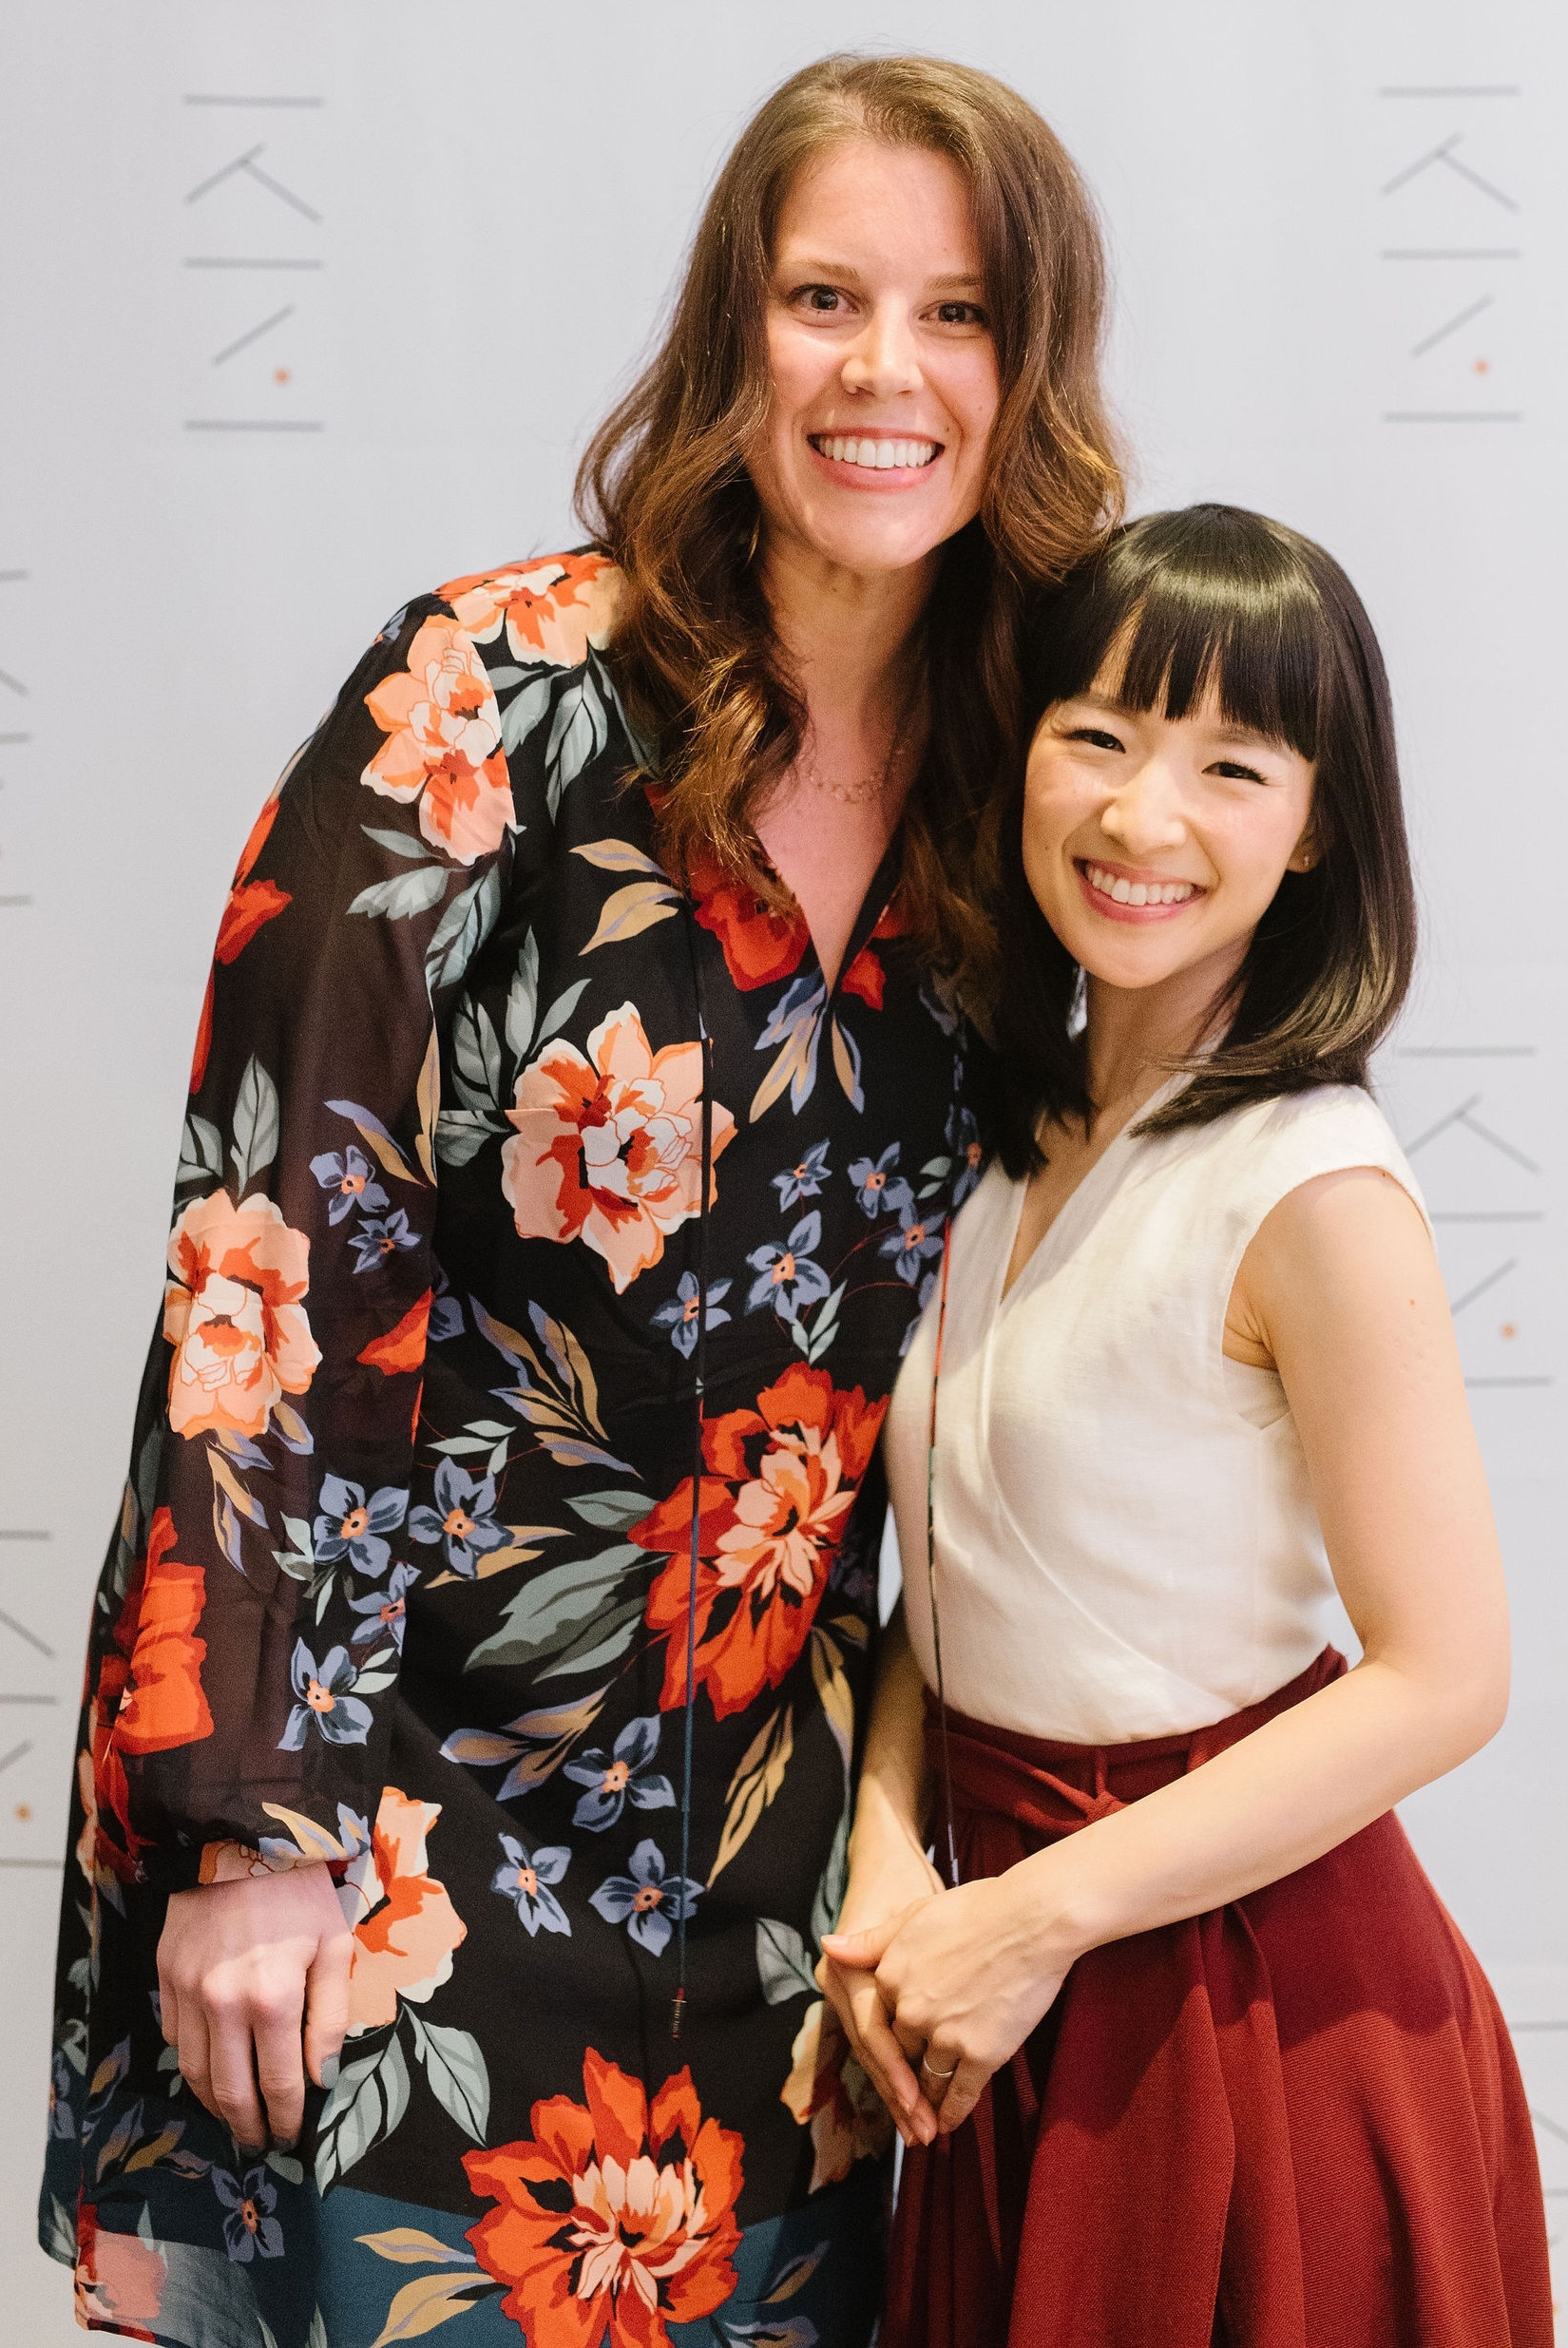 Pictured with Marie Kondo at the 2019 NYC KonMari Consultant in Training Seminar